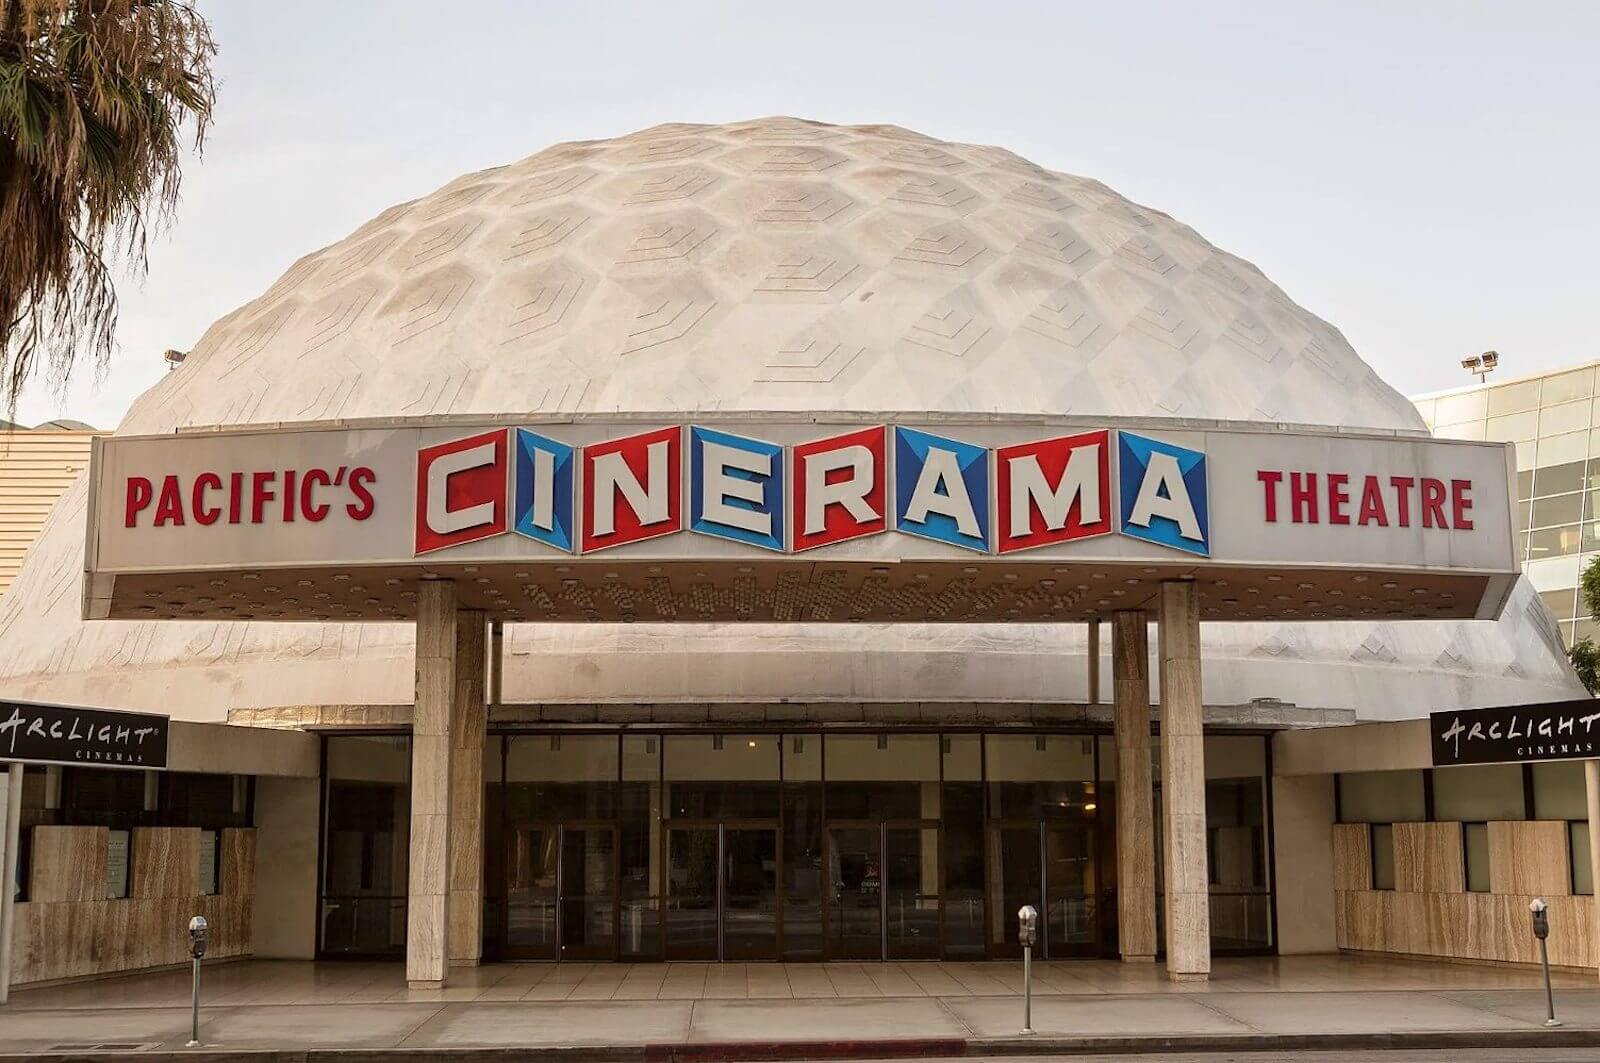 What-is-Widescreen-Aspect-Ratio-Pacifics-Cinerama-Theatre